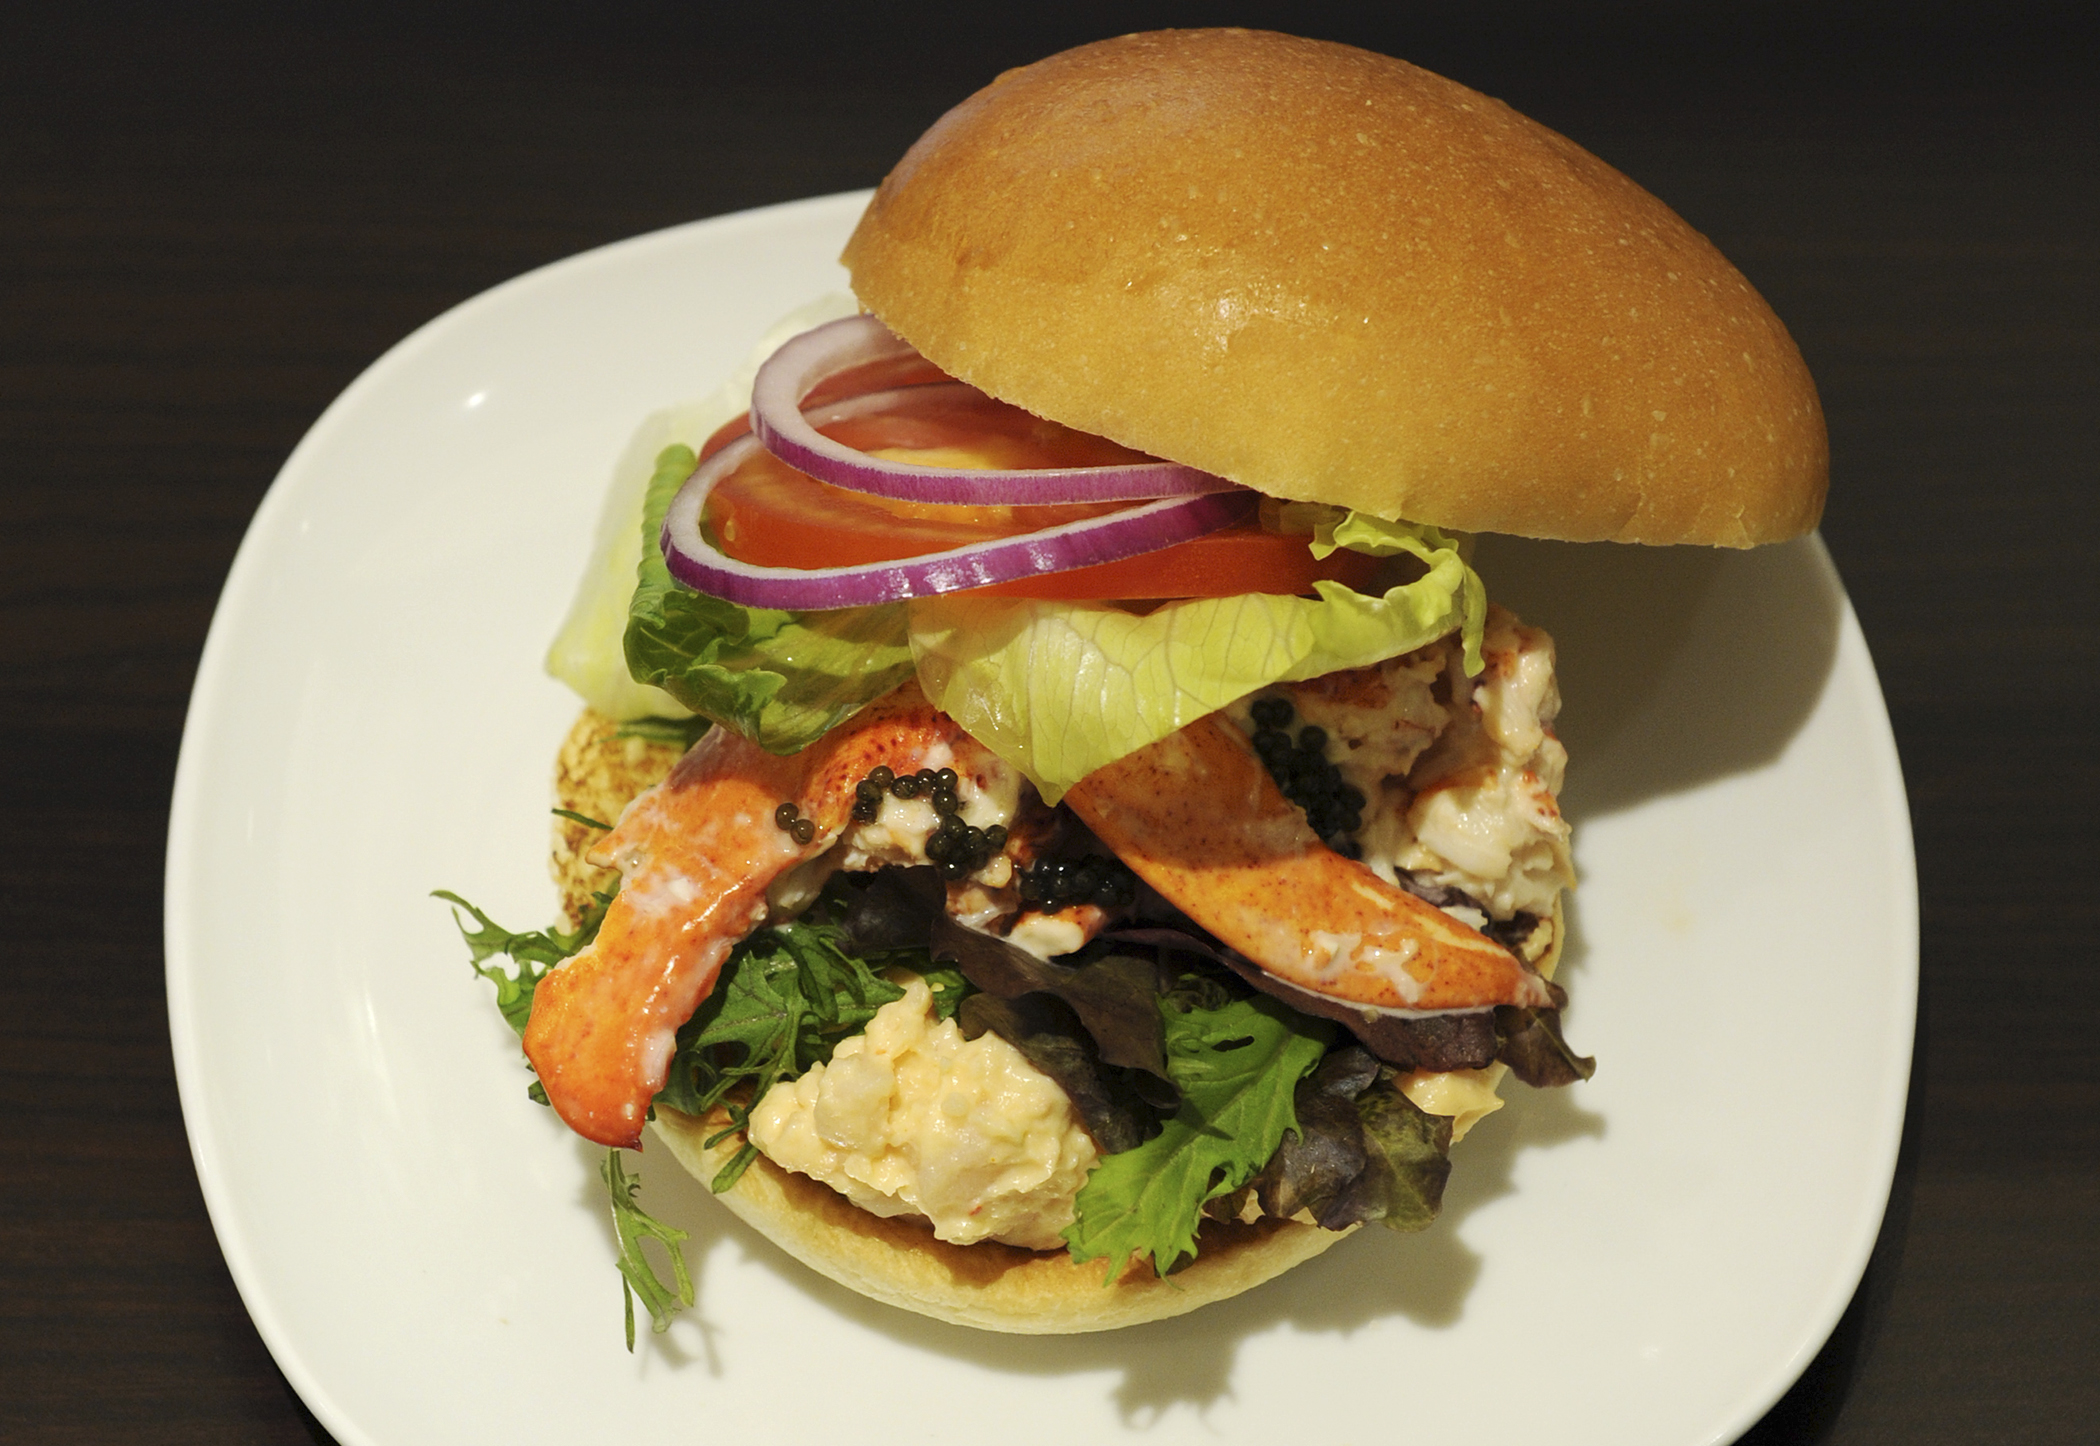 This picture shows the Lobster and Caviar burger featuring Canadian lobster and contains whole lobster pieces as well as a lobster salad made with a mustard mayonnaise as well as a sprinkle of caviar produced by Wendy's Japan as part of the campany's opening of their second restaurant in Roppongi, Tokyo on August 17, 2012. Wendy's Japan introduced two new burgers to their Japan Premium line of burgers which features fancy ingredients.